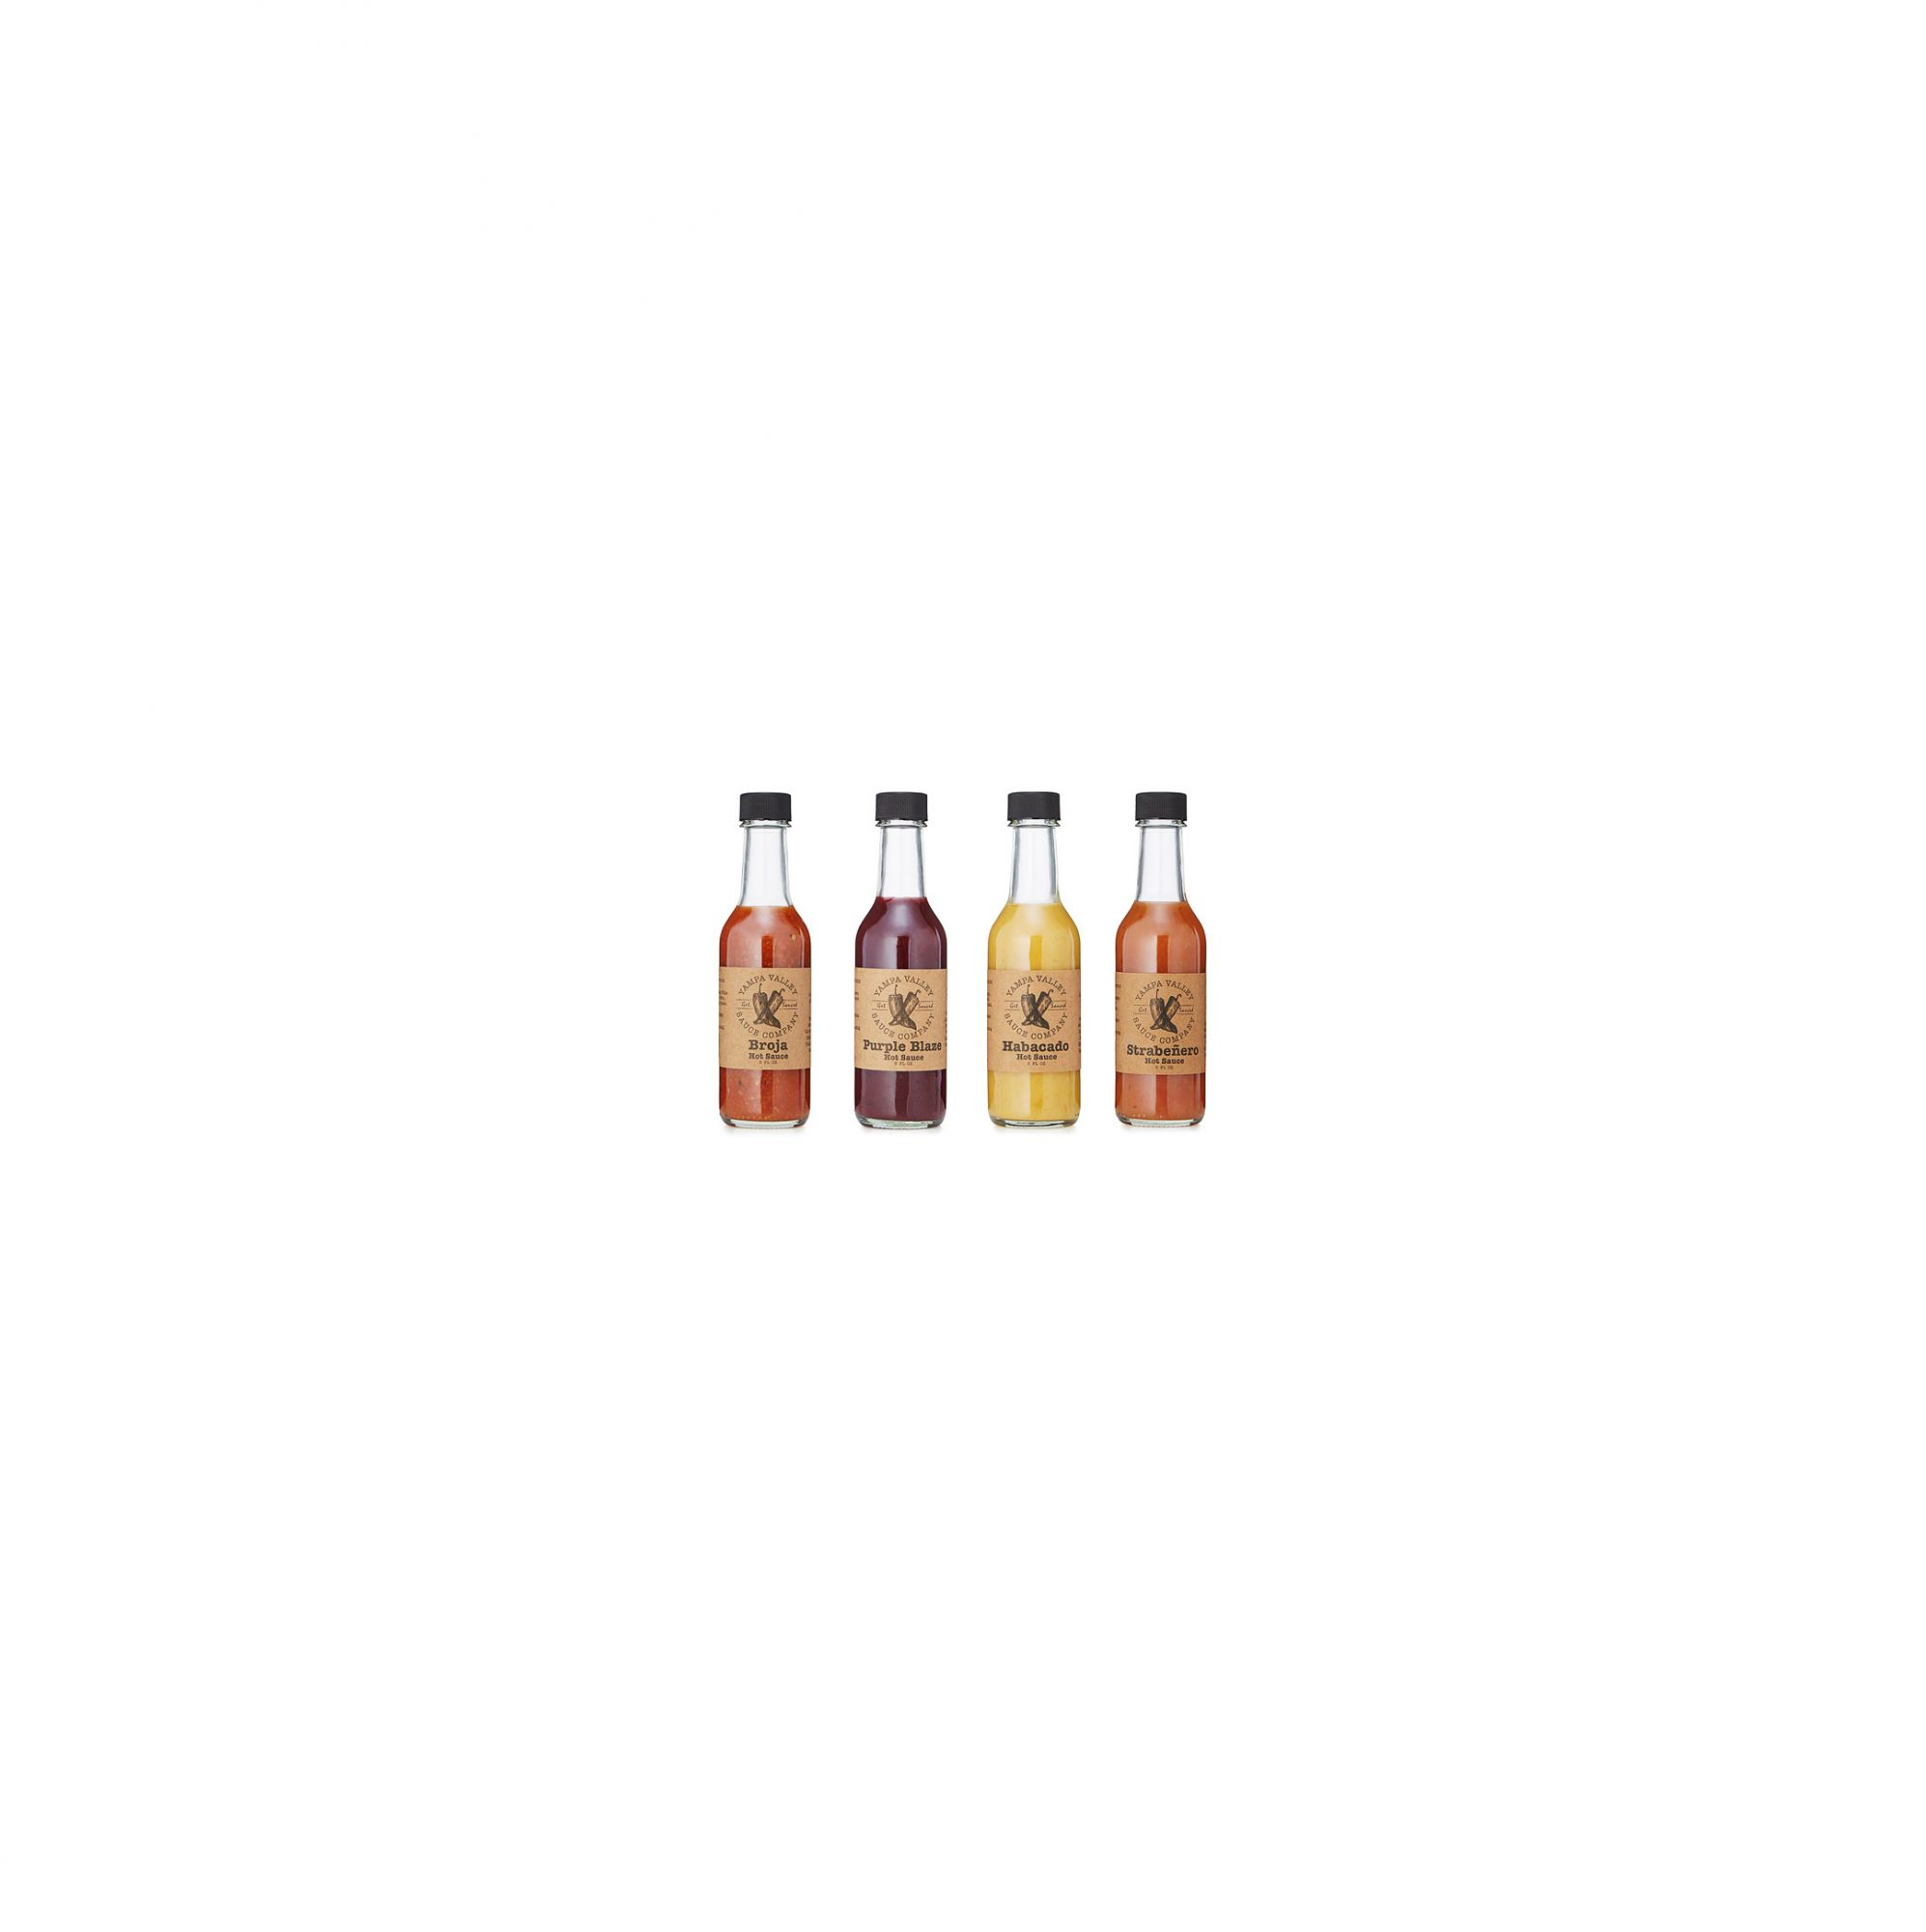 Yampa Valley Sauce Company Habanero Hot Sauces